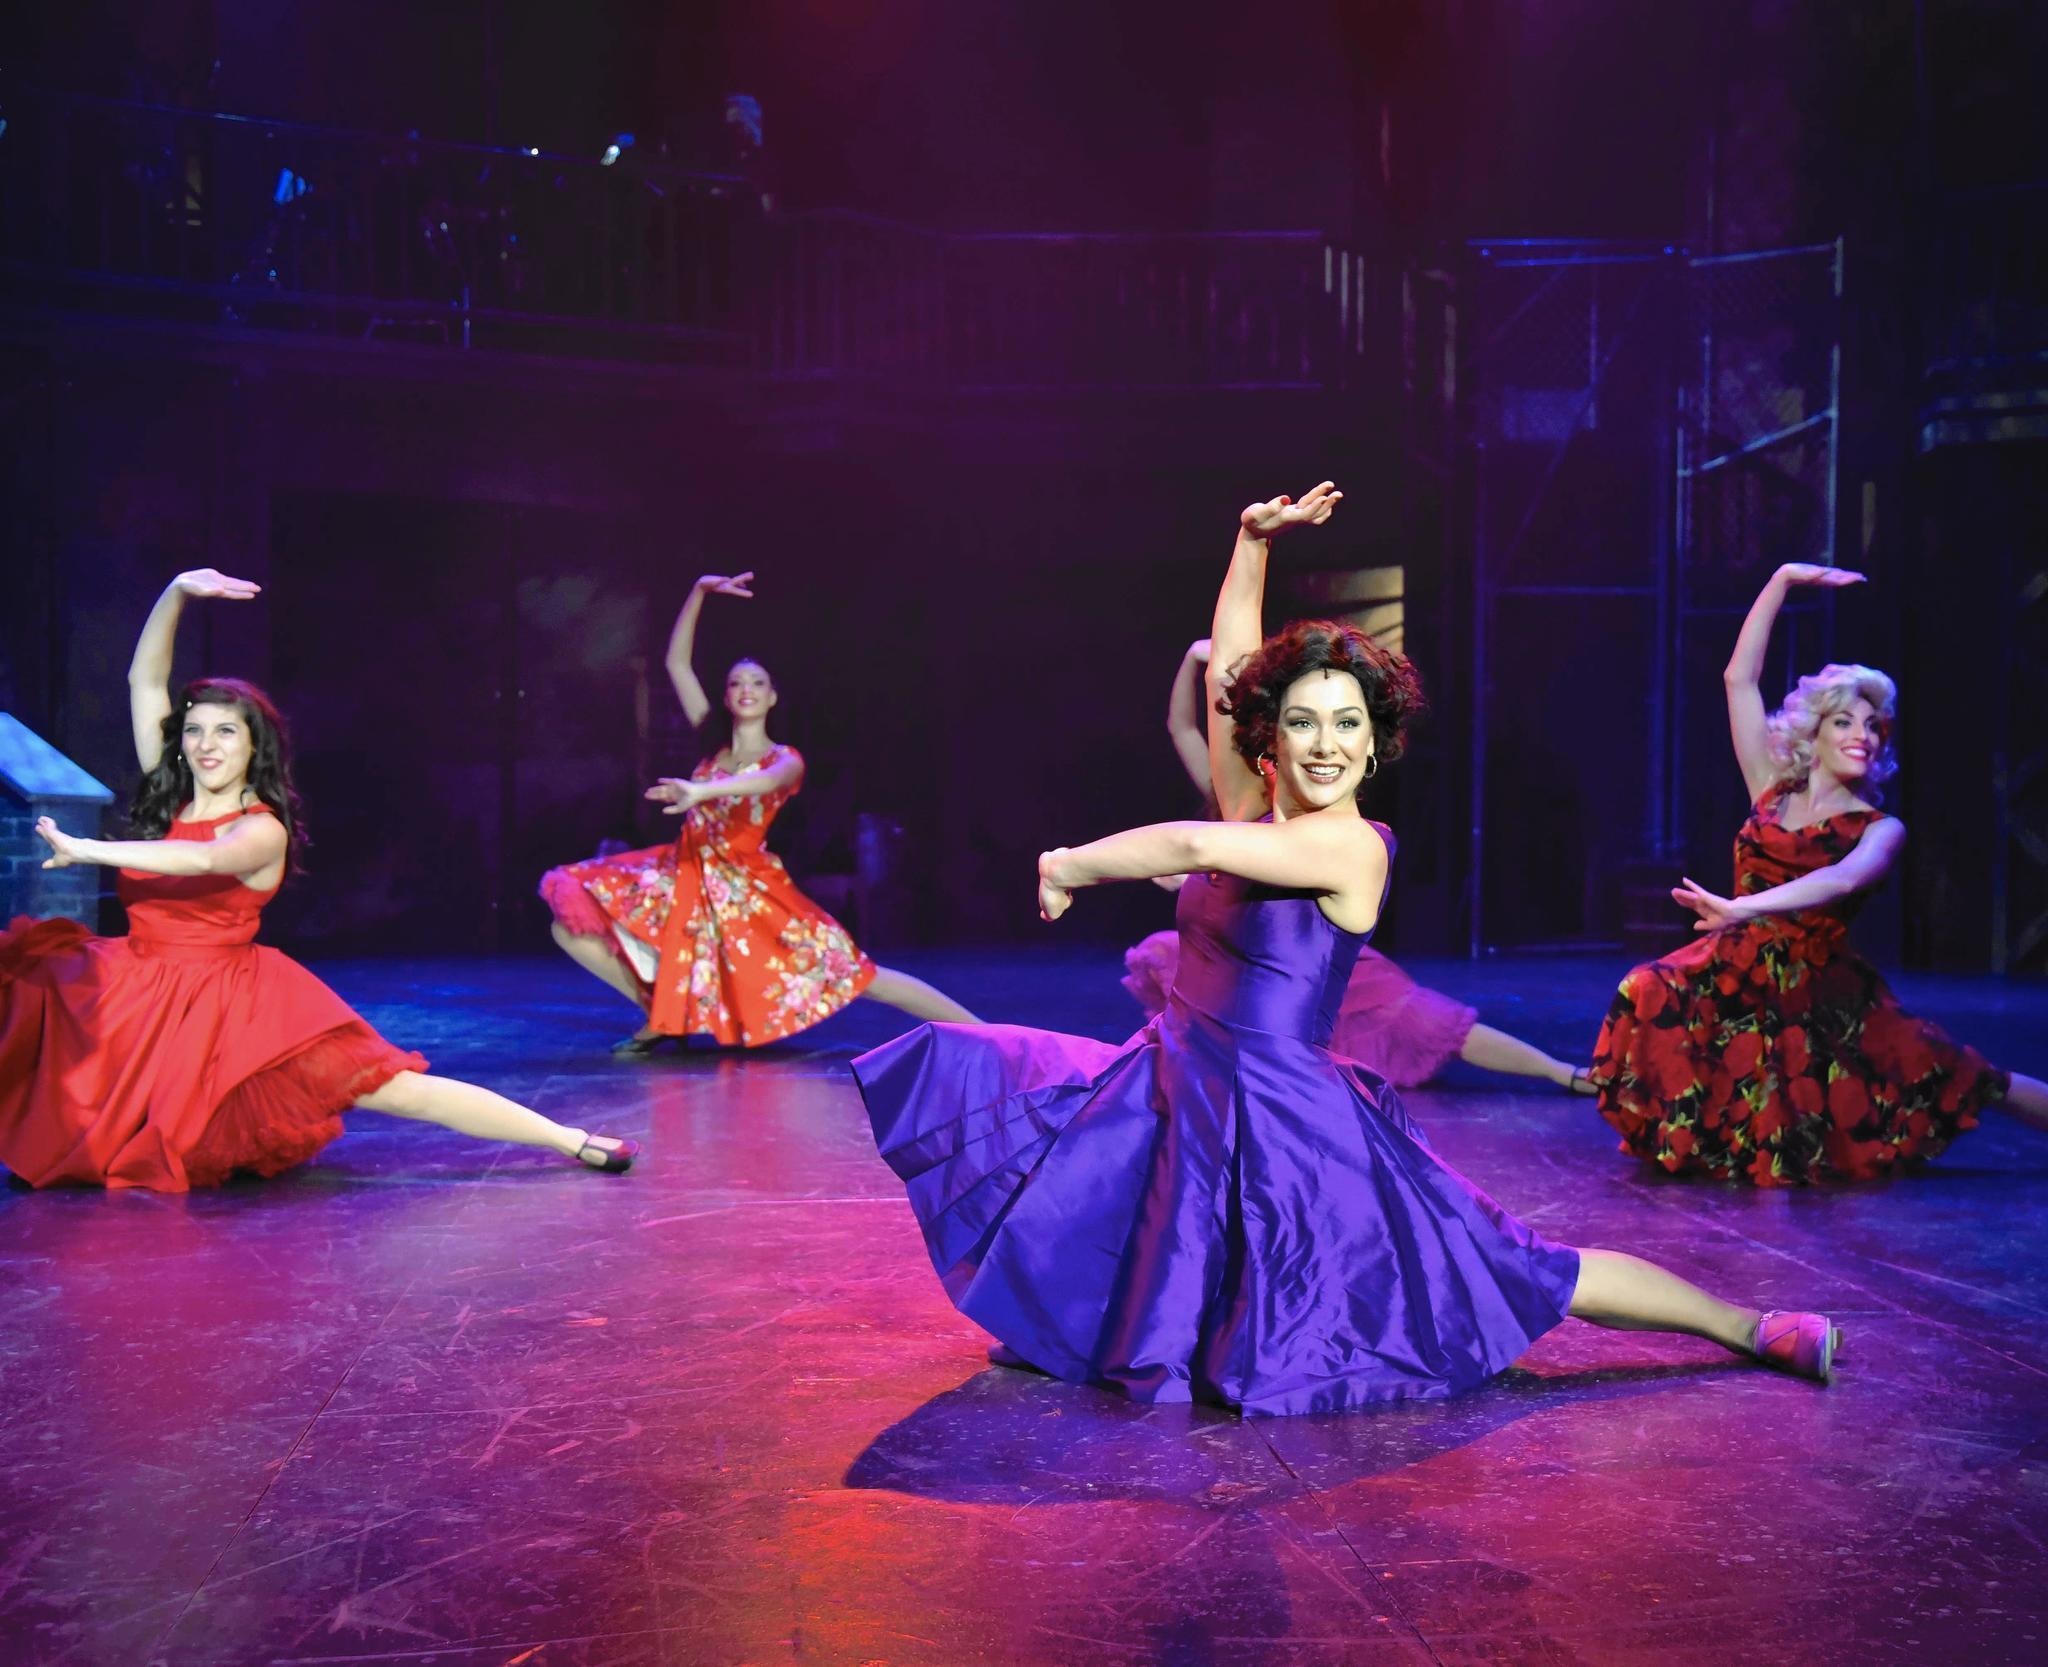 BWW Review: WEST SIDE STORY at Paper Mill Playhouse is Magnificent